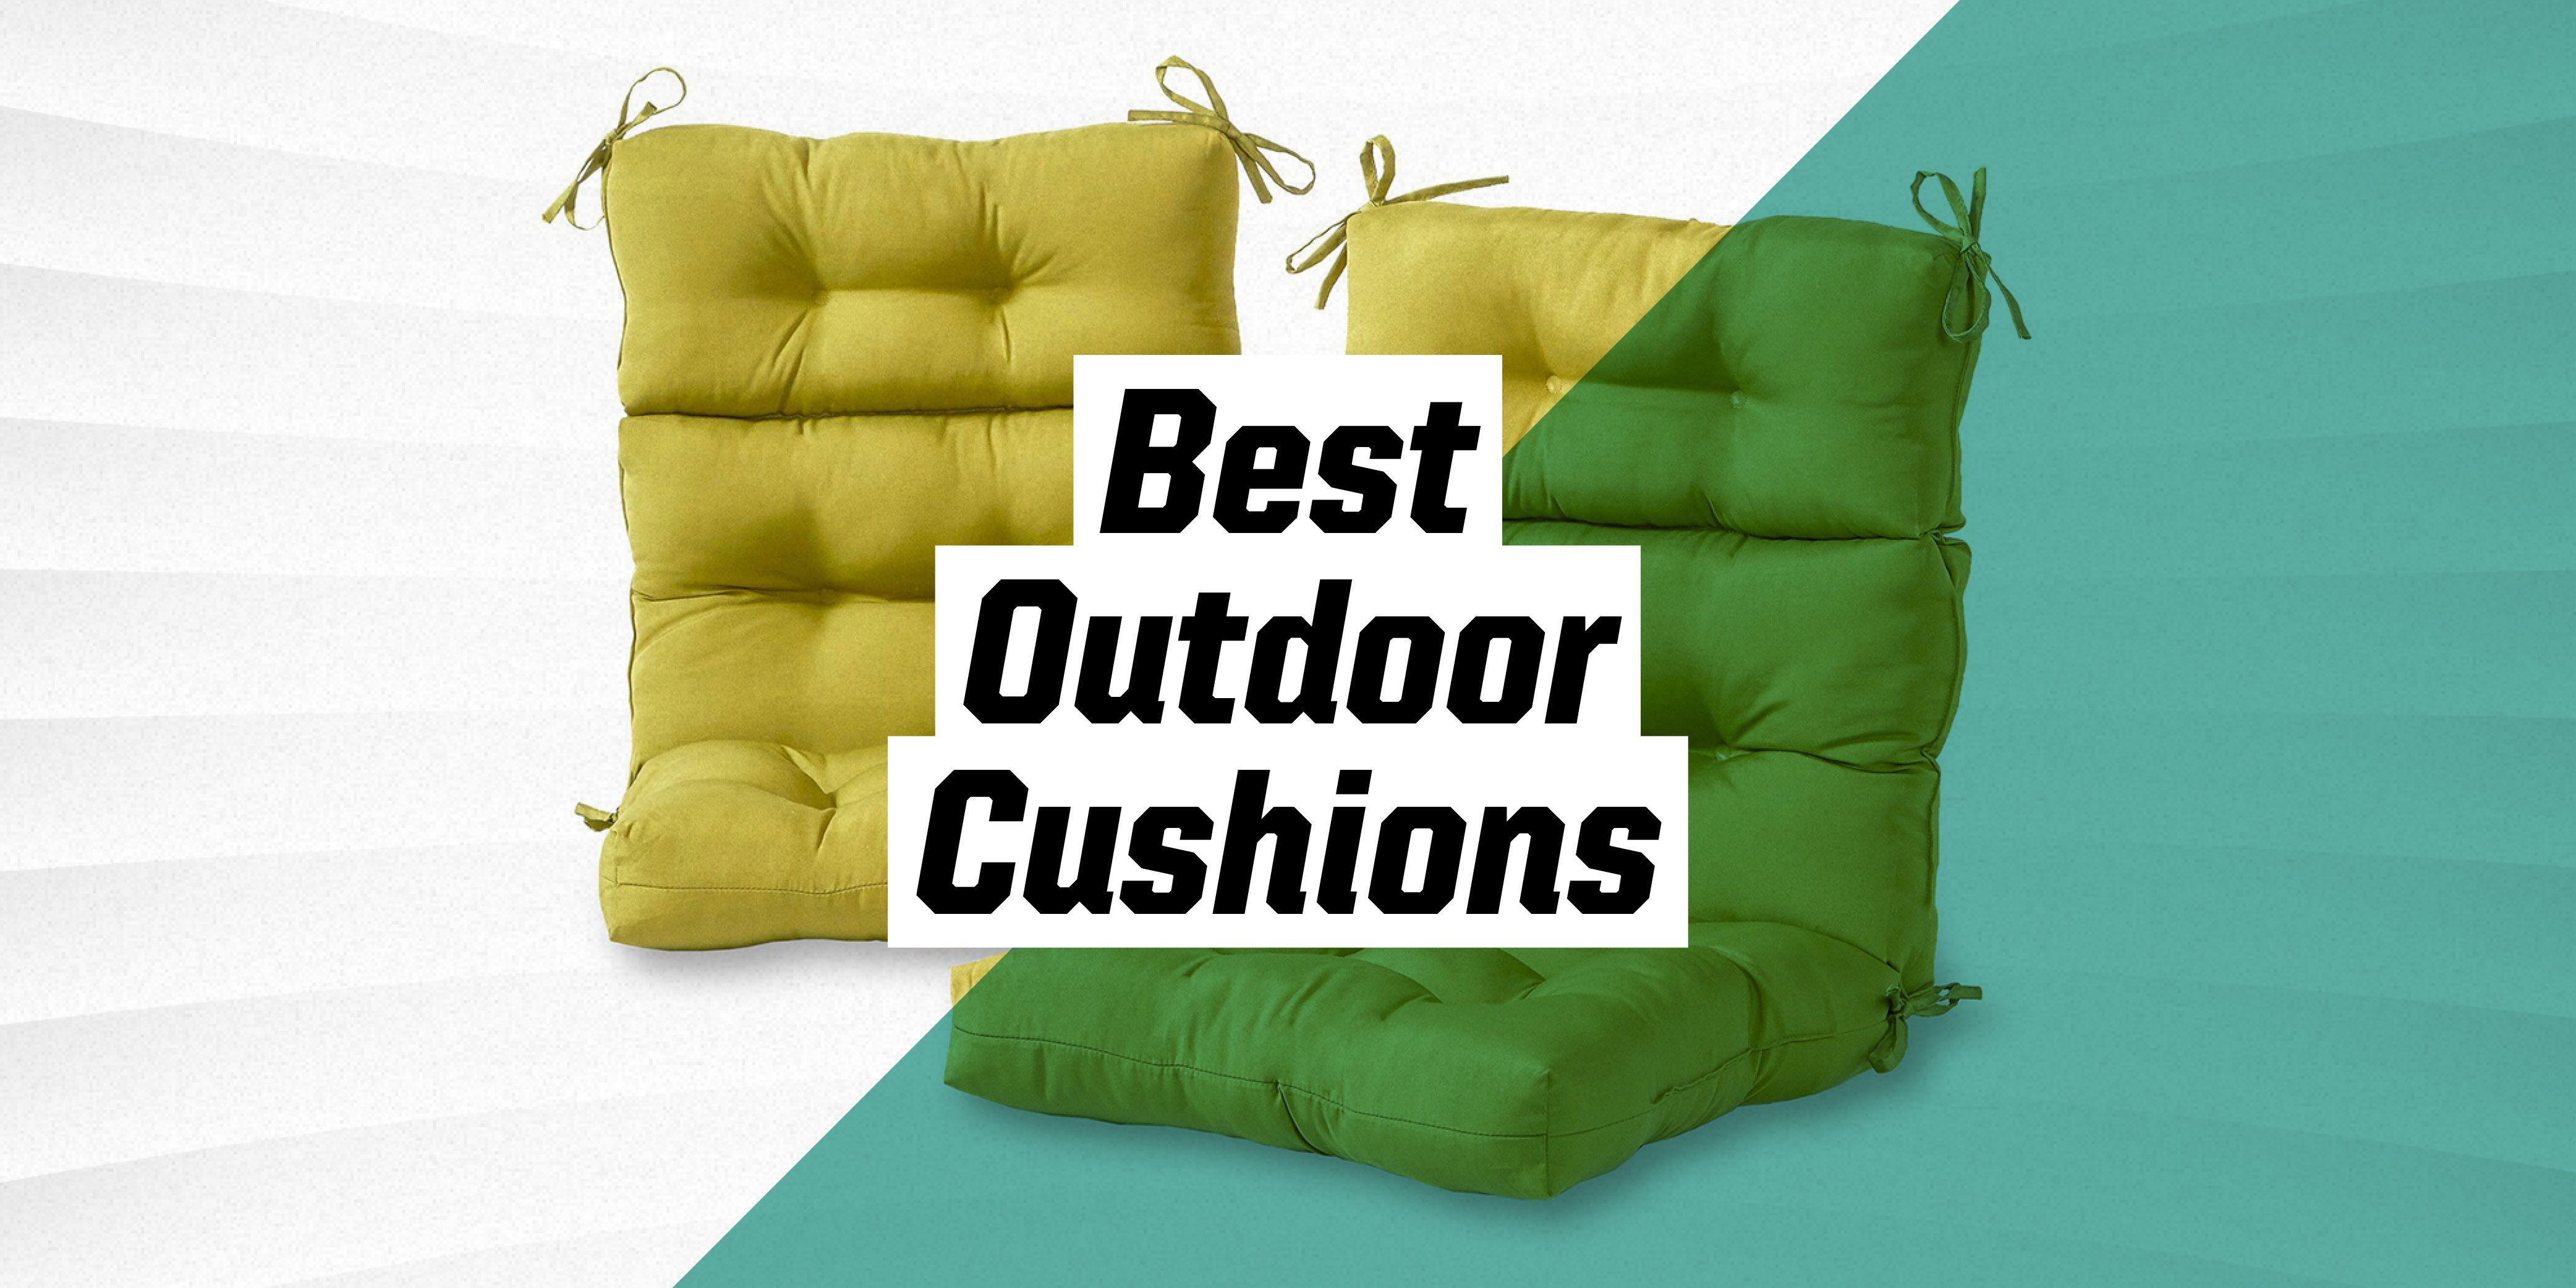 10 best outdoor cushions 2021